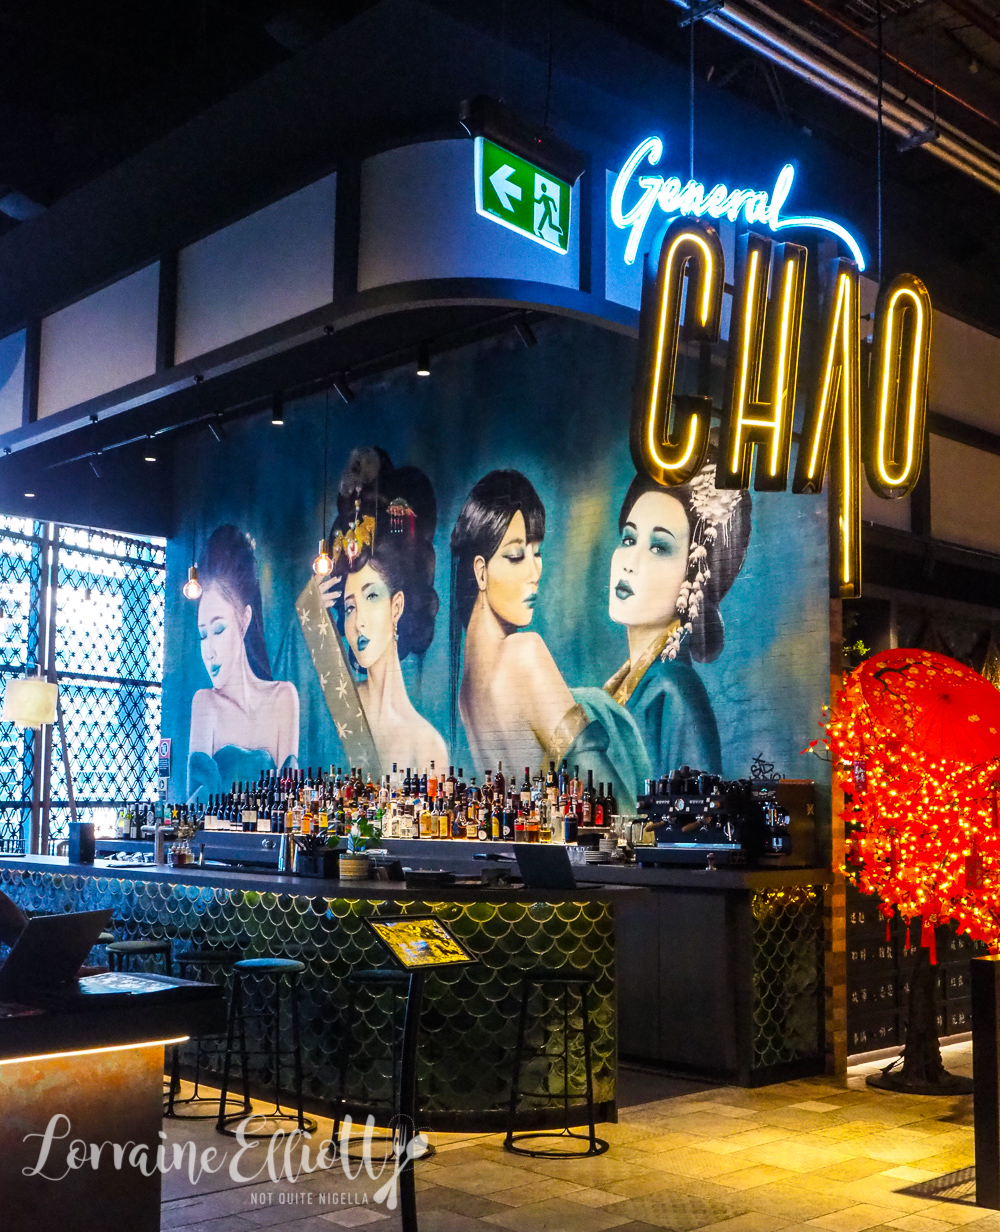 General Chao, Chatswood